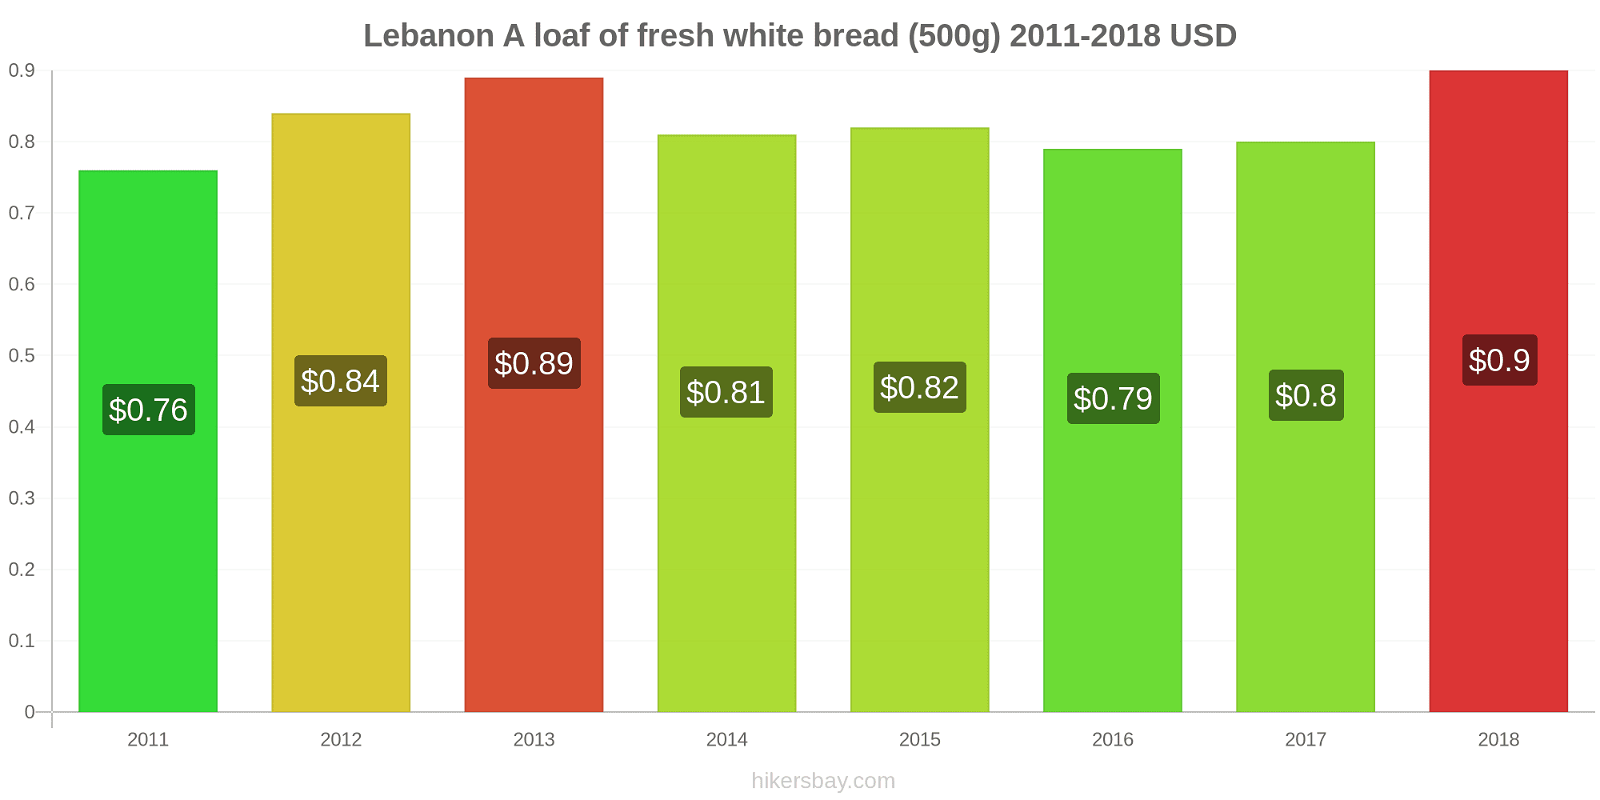 Lebanon price changes A loaf of fresh white bread (500g) hikersbay.com